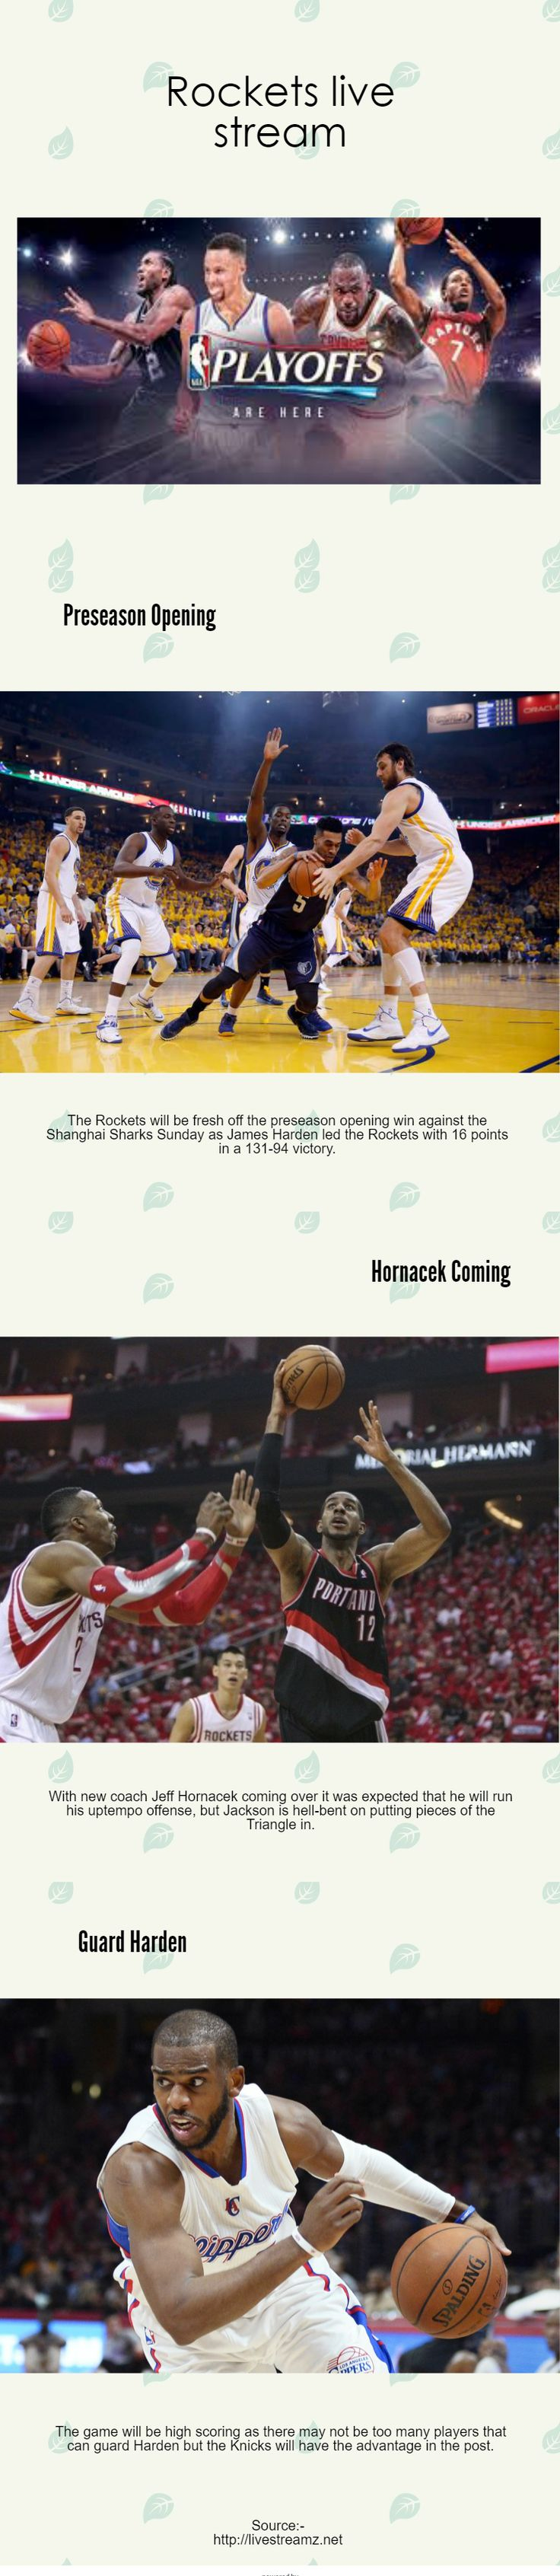 All sports streams on this site are mobile friendly so u can follow your favorite team even if your on the road with your iphone or android. http://livestreamz.net/grizzlies-stream/ #Rockets_live_stream #Grizzlies_live_stream #Spurs_live_stream #tennis_live_stream #premier_league_live_stream #champions_league_live_stream #watch_football_online #football_live_stream